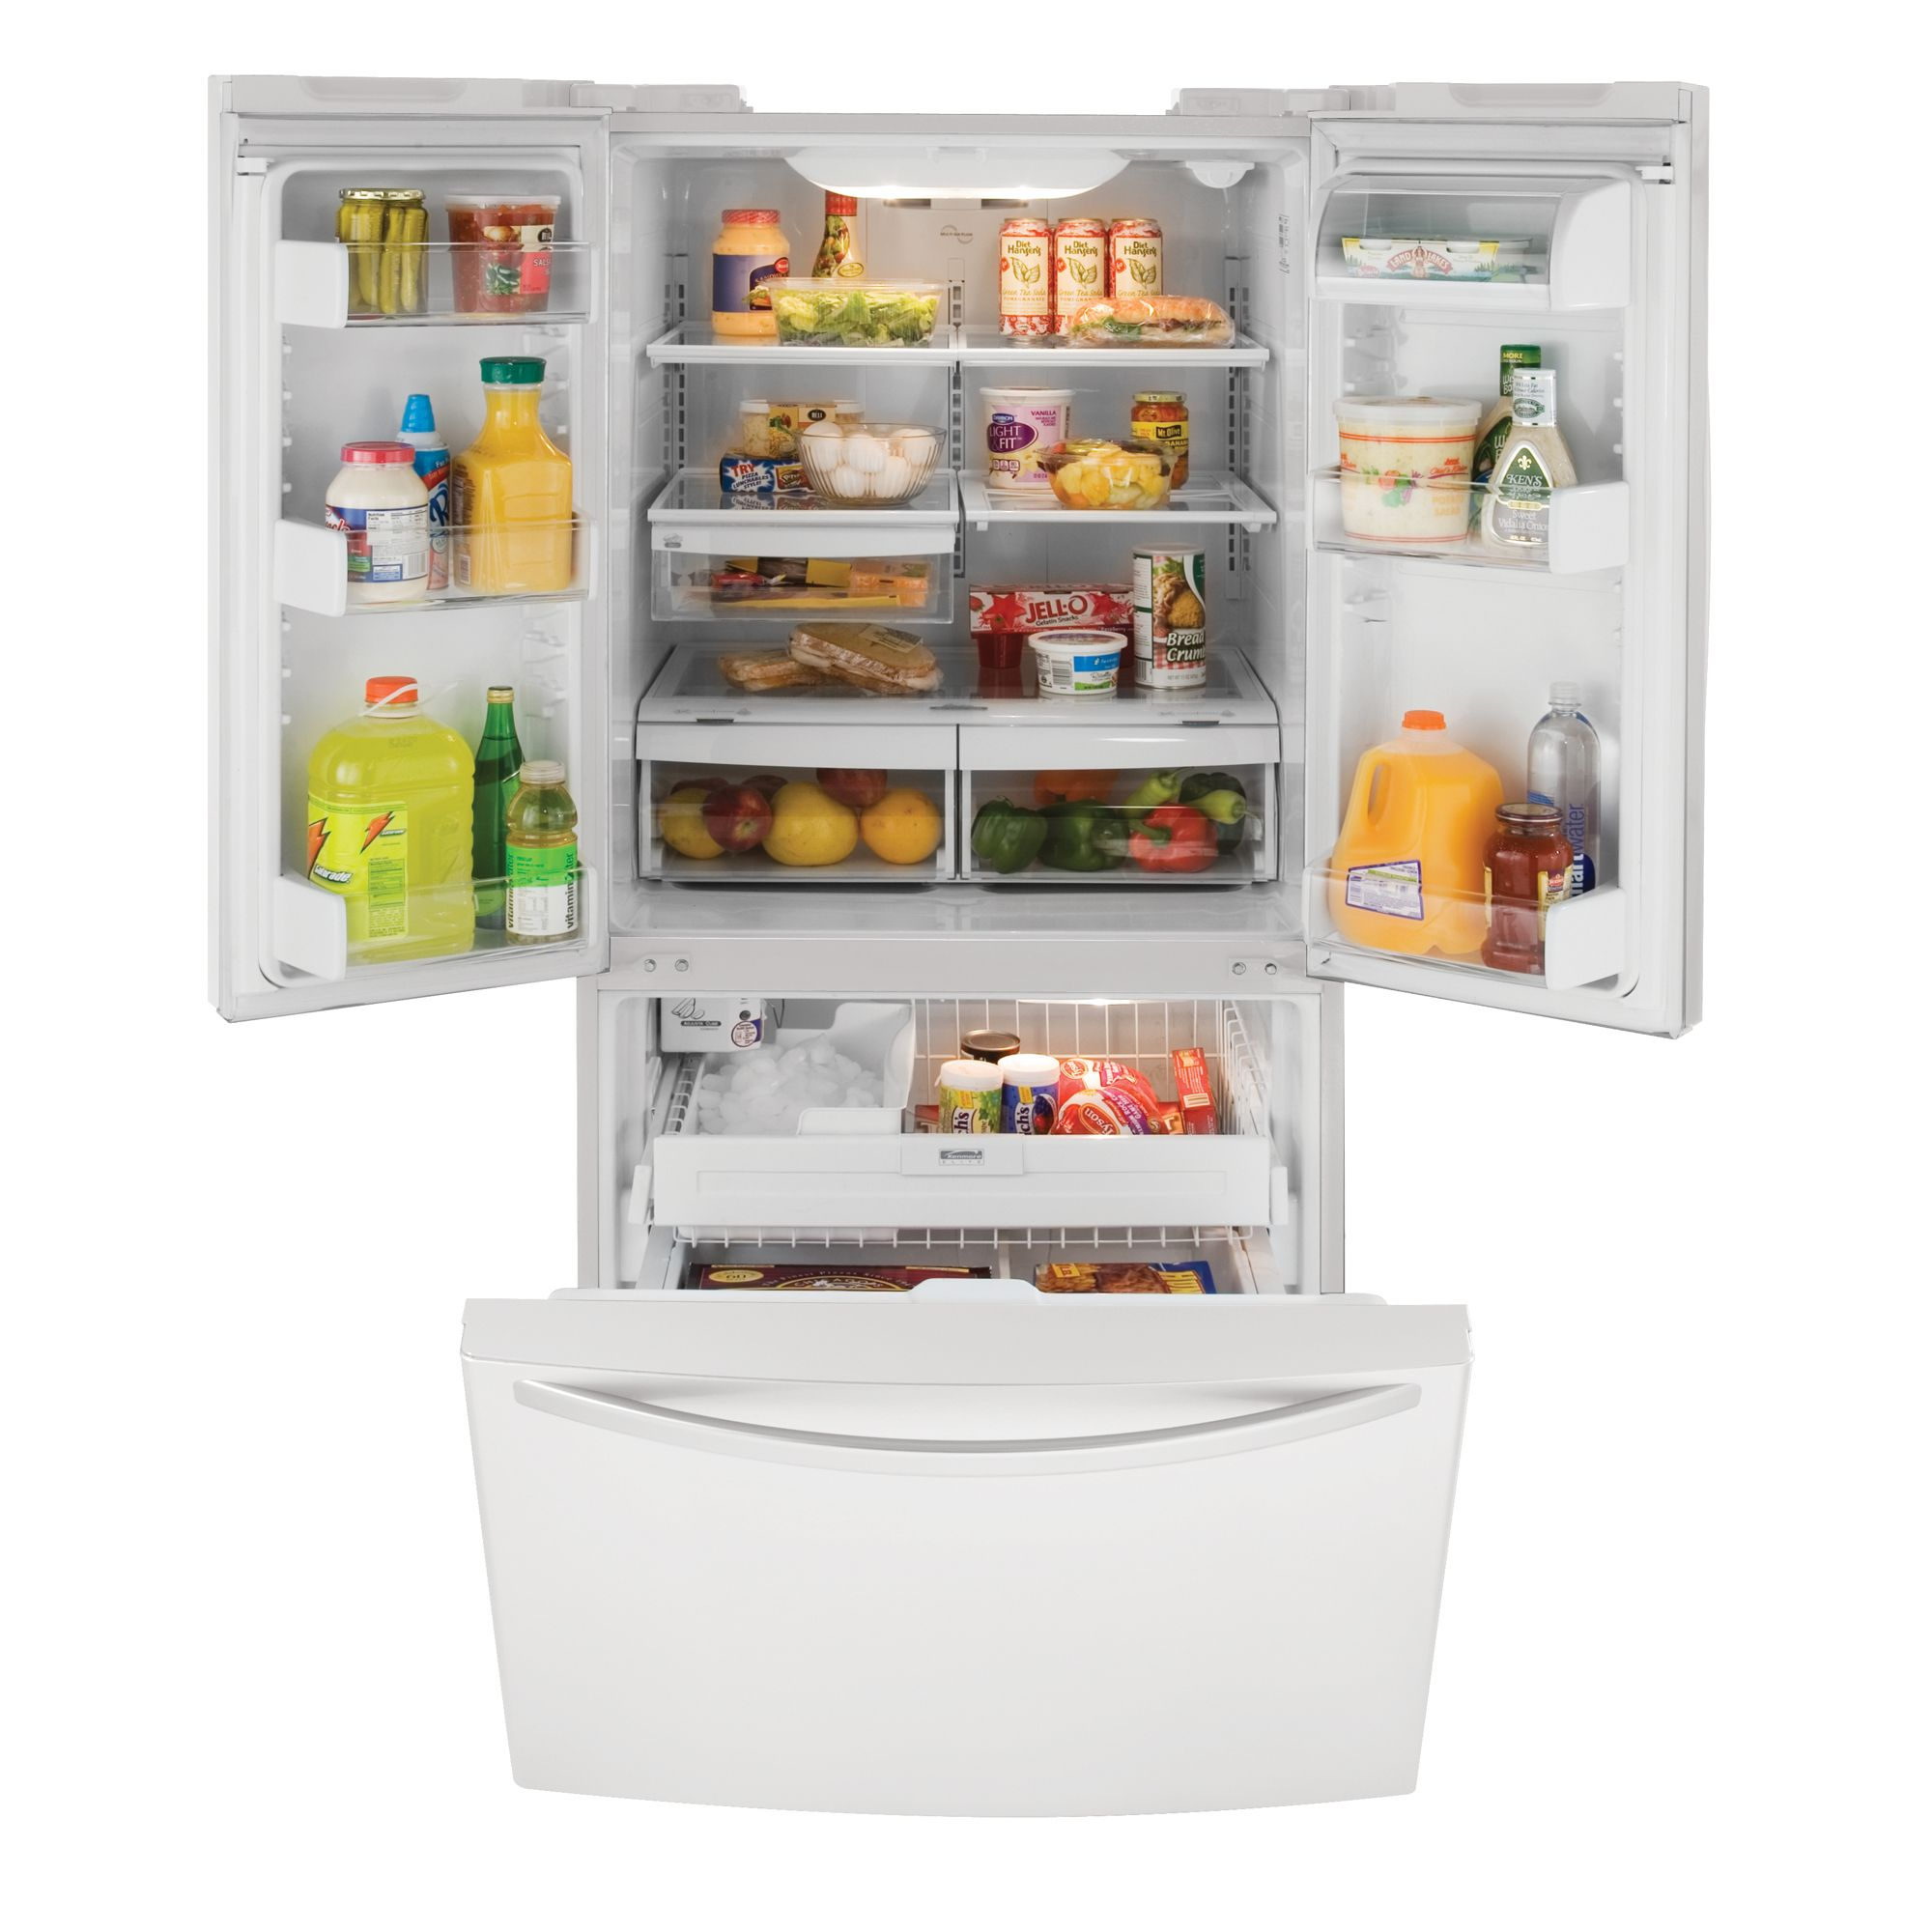 Kenmore Elite 23.0 cu. ft. French-Door Bottom Freezer Refrigerator (7834)